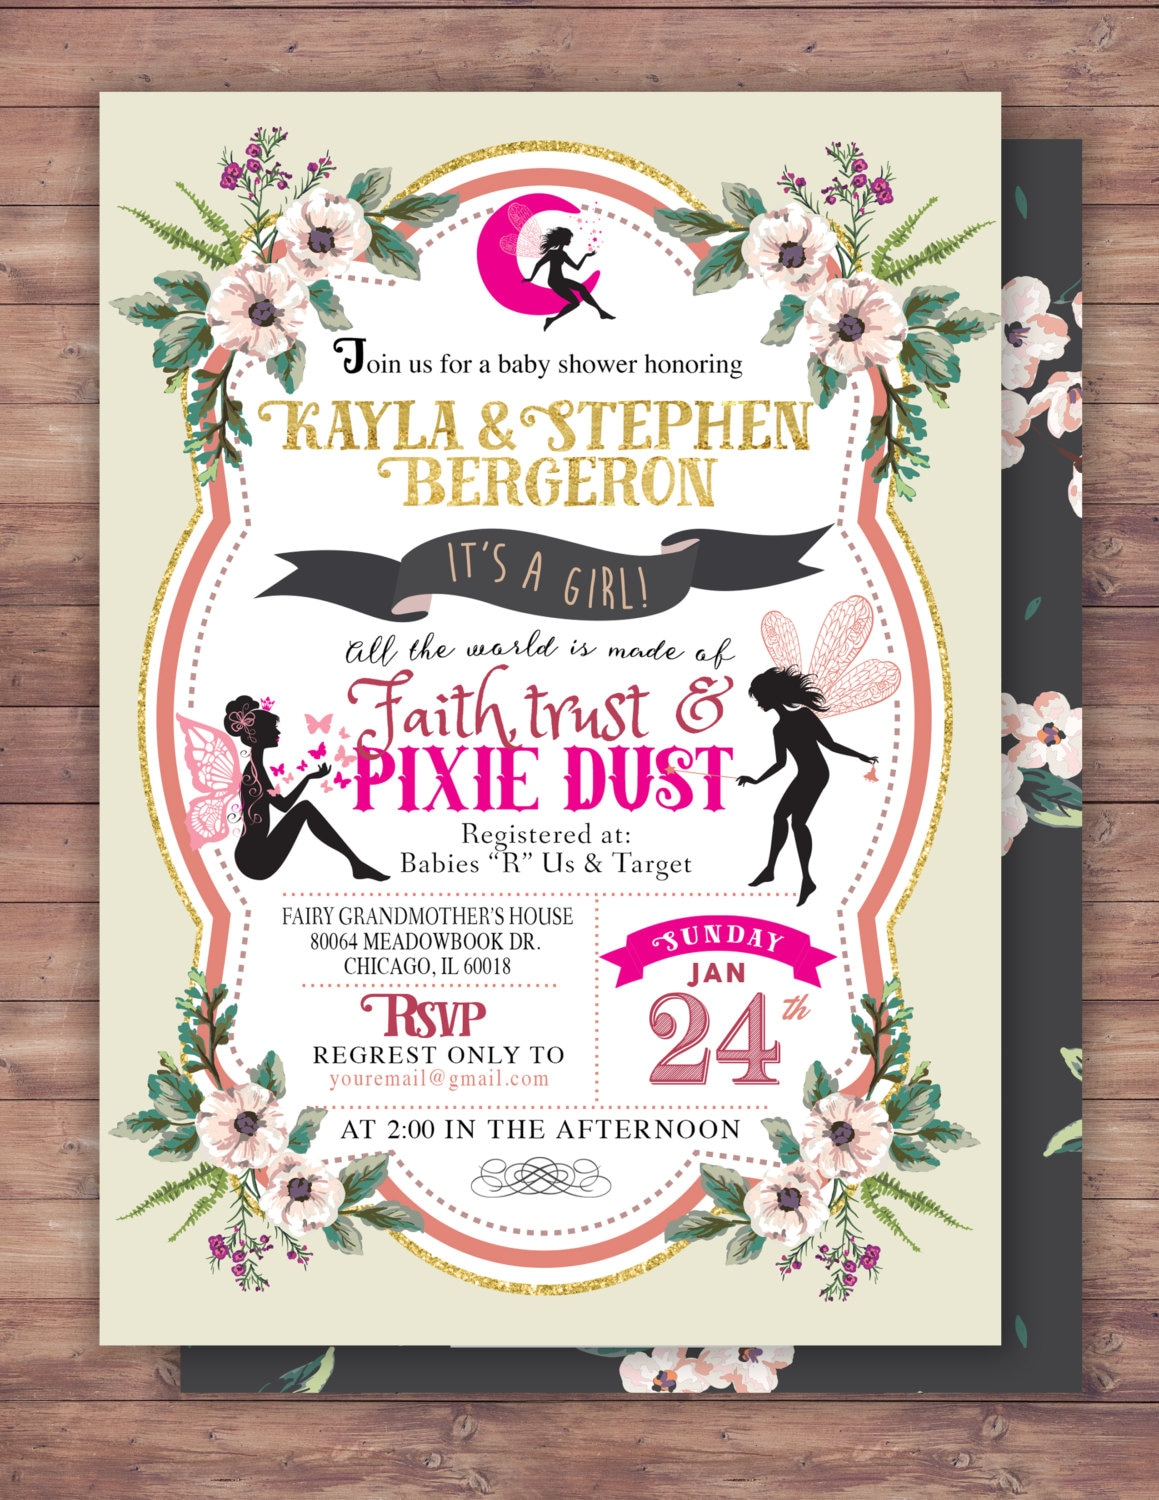 Fairy baby shower invitation neverland invitation watercolor fairy baby shower invitation neverland invitation watercolor floral baby shower vintage floral background pixie boho invite filmwisefo